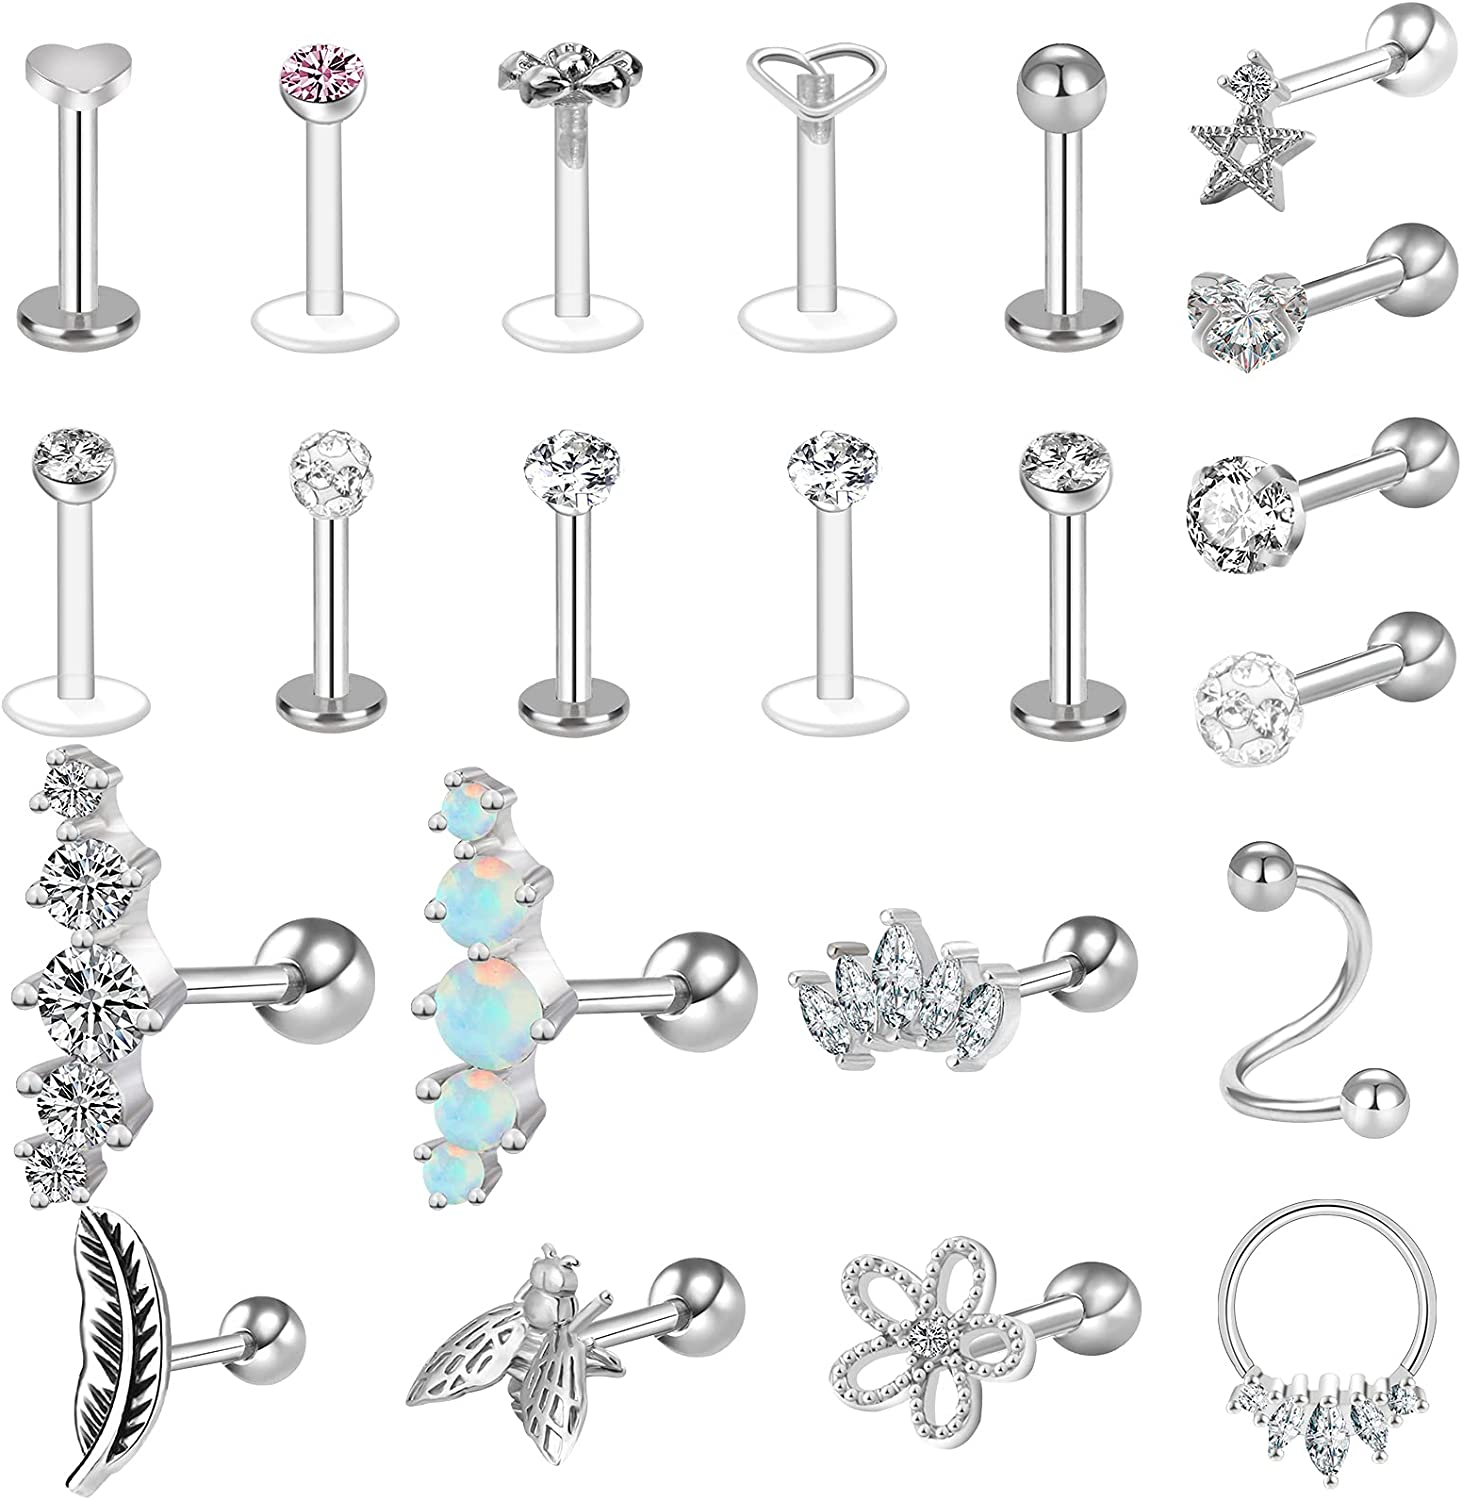 Mukum 22Pcs 16G Tragus Earrings for Women Cartilage Earrings Tragus Jewelry Forward Helix Earrings Hoop Rook Daith Conch Stainless Steel Piercing Jewelry